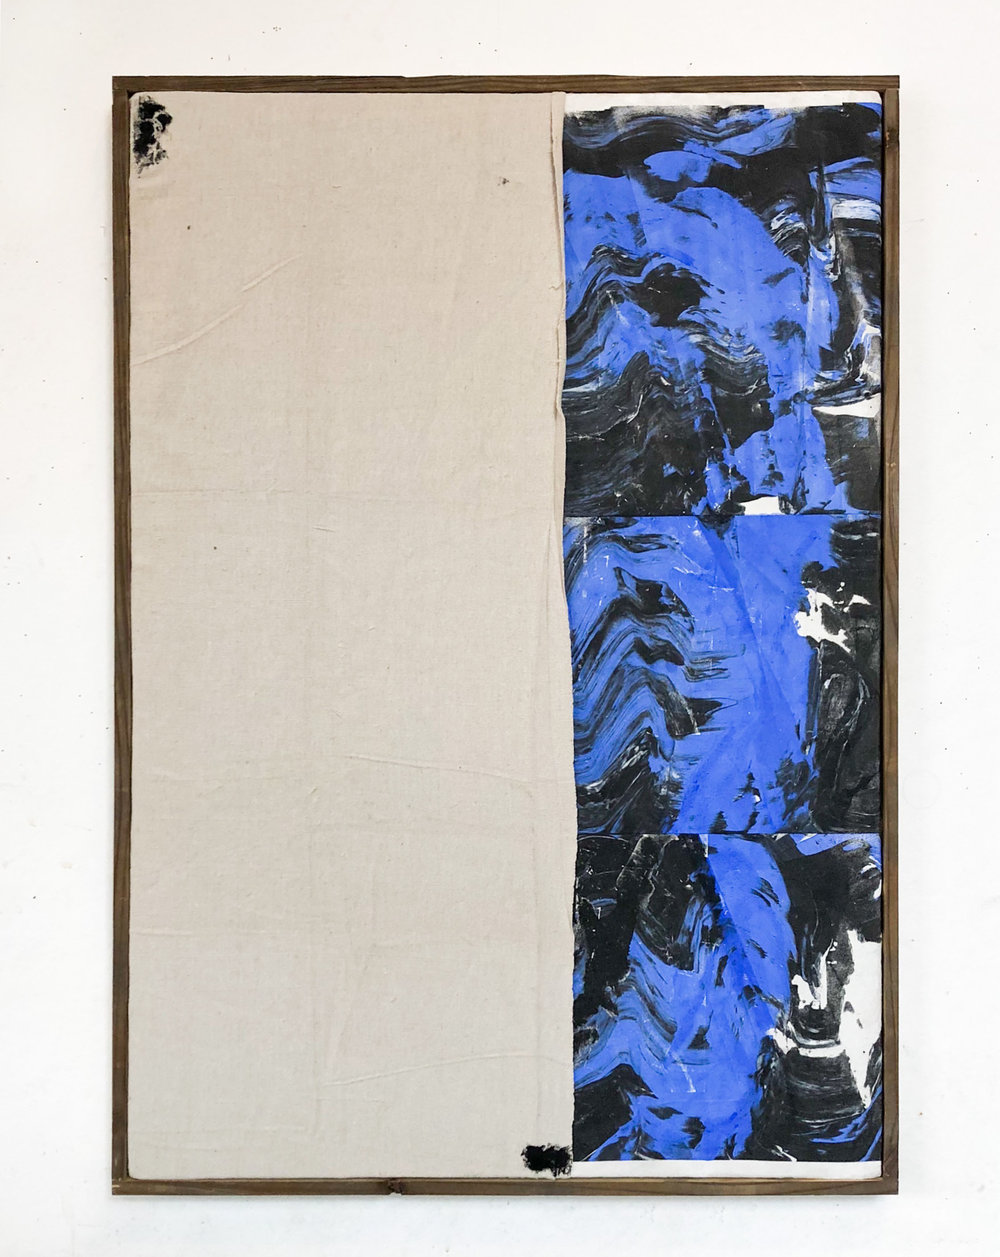 "SHIV'AH (שבעה), gesso, oil stick and ink with sand from the West Bank and Israel on linen and microsuede. Stretched on silkscreen frame 26"" x 37"", 2017"